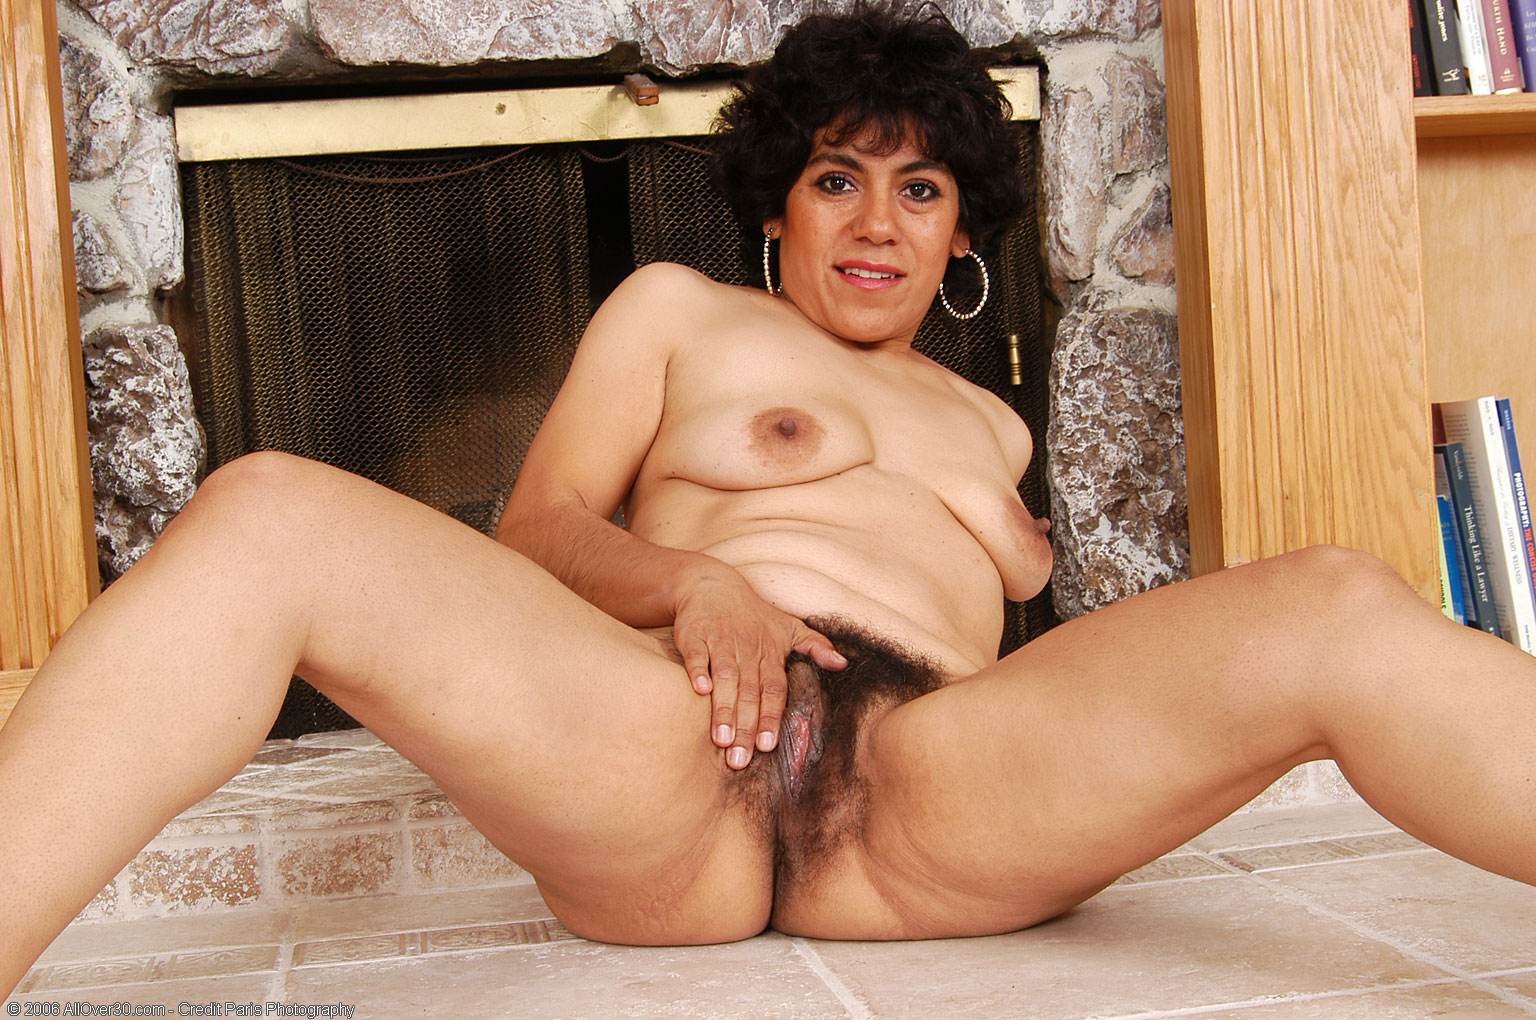 AllOver30Free.com - Featuring Majal - High Quality Mature ...